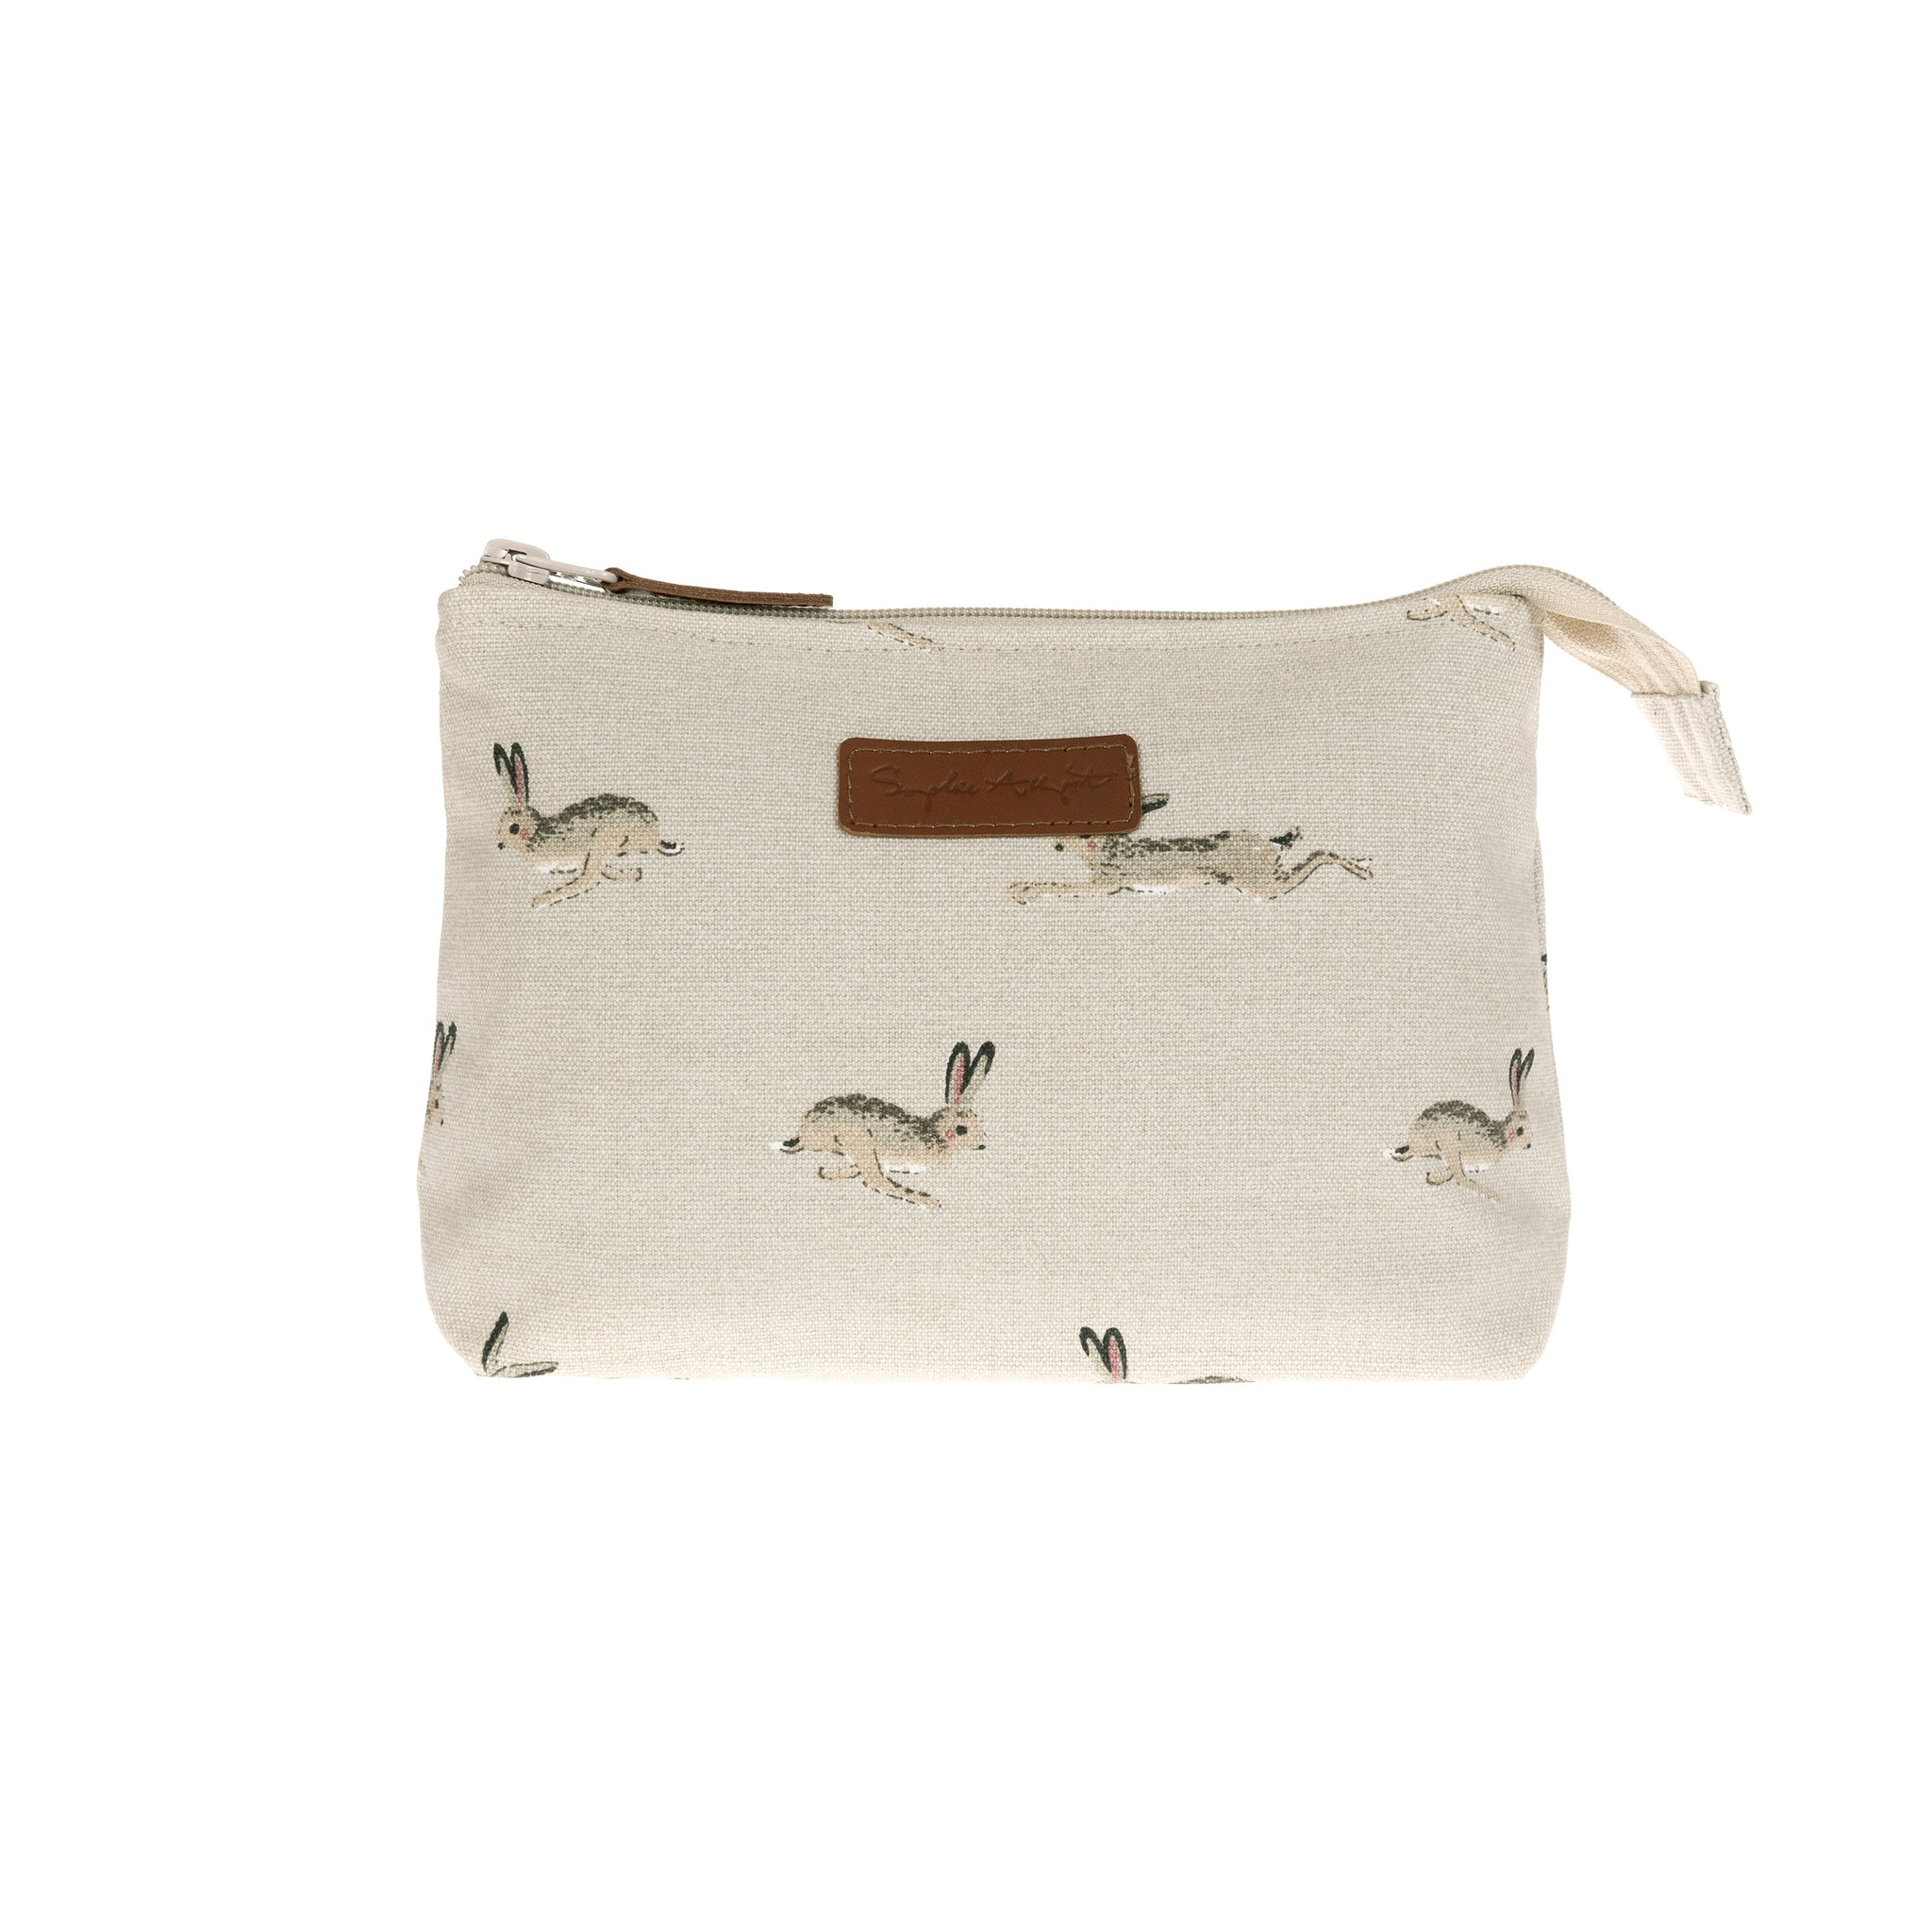 Makeup bag with hare design by Sophie Allport